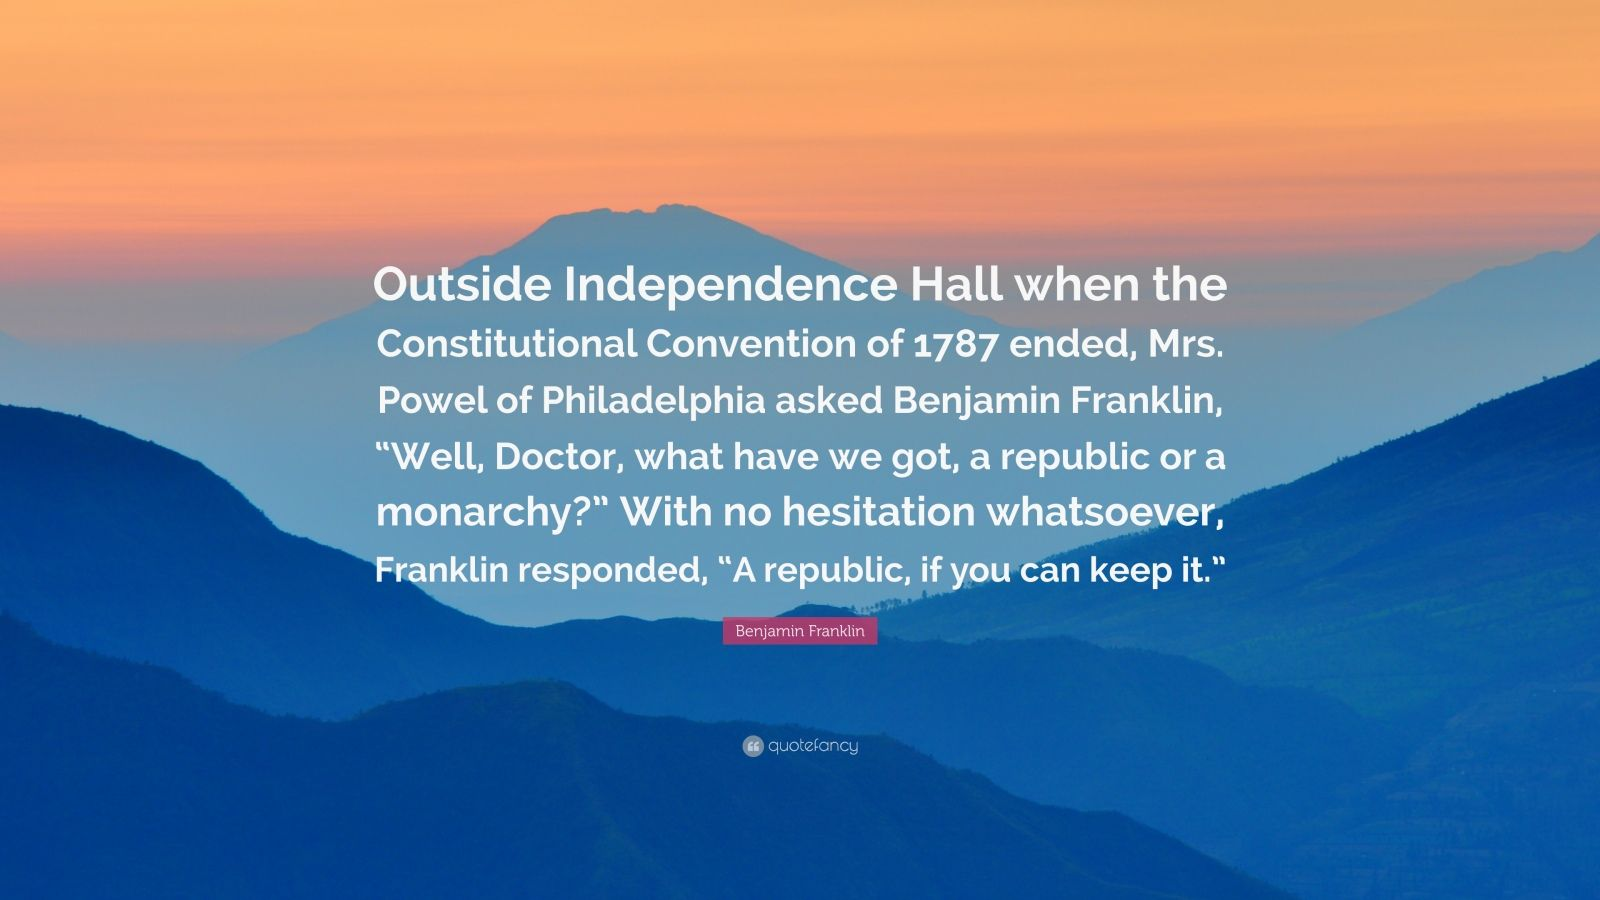 """Benjamin Franklin Quote: """"Outside Independence Hall when the Constitutional Convention of 1787 ended, Mrs. Powel of Philadelphia asked Benjamin Franklin, """"Well, Doctor, what have we got, a republic or a monarchy?"""" With no hesitation whatsoever, Franklin responded, """"A republic, if you can keep it."""""""""""